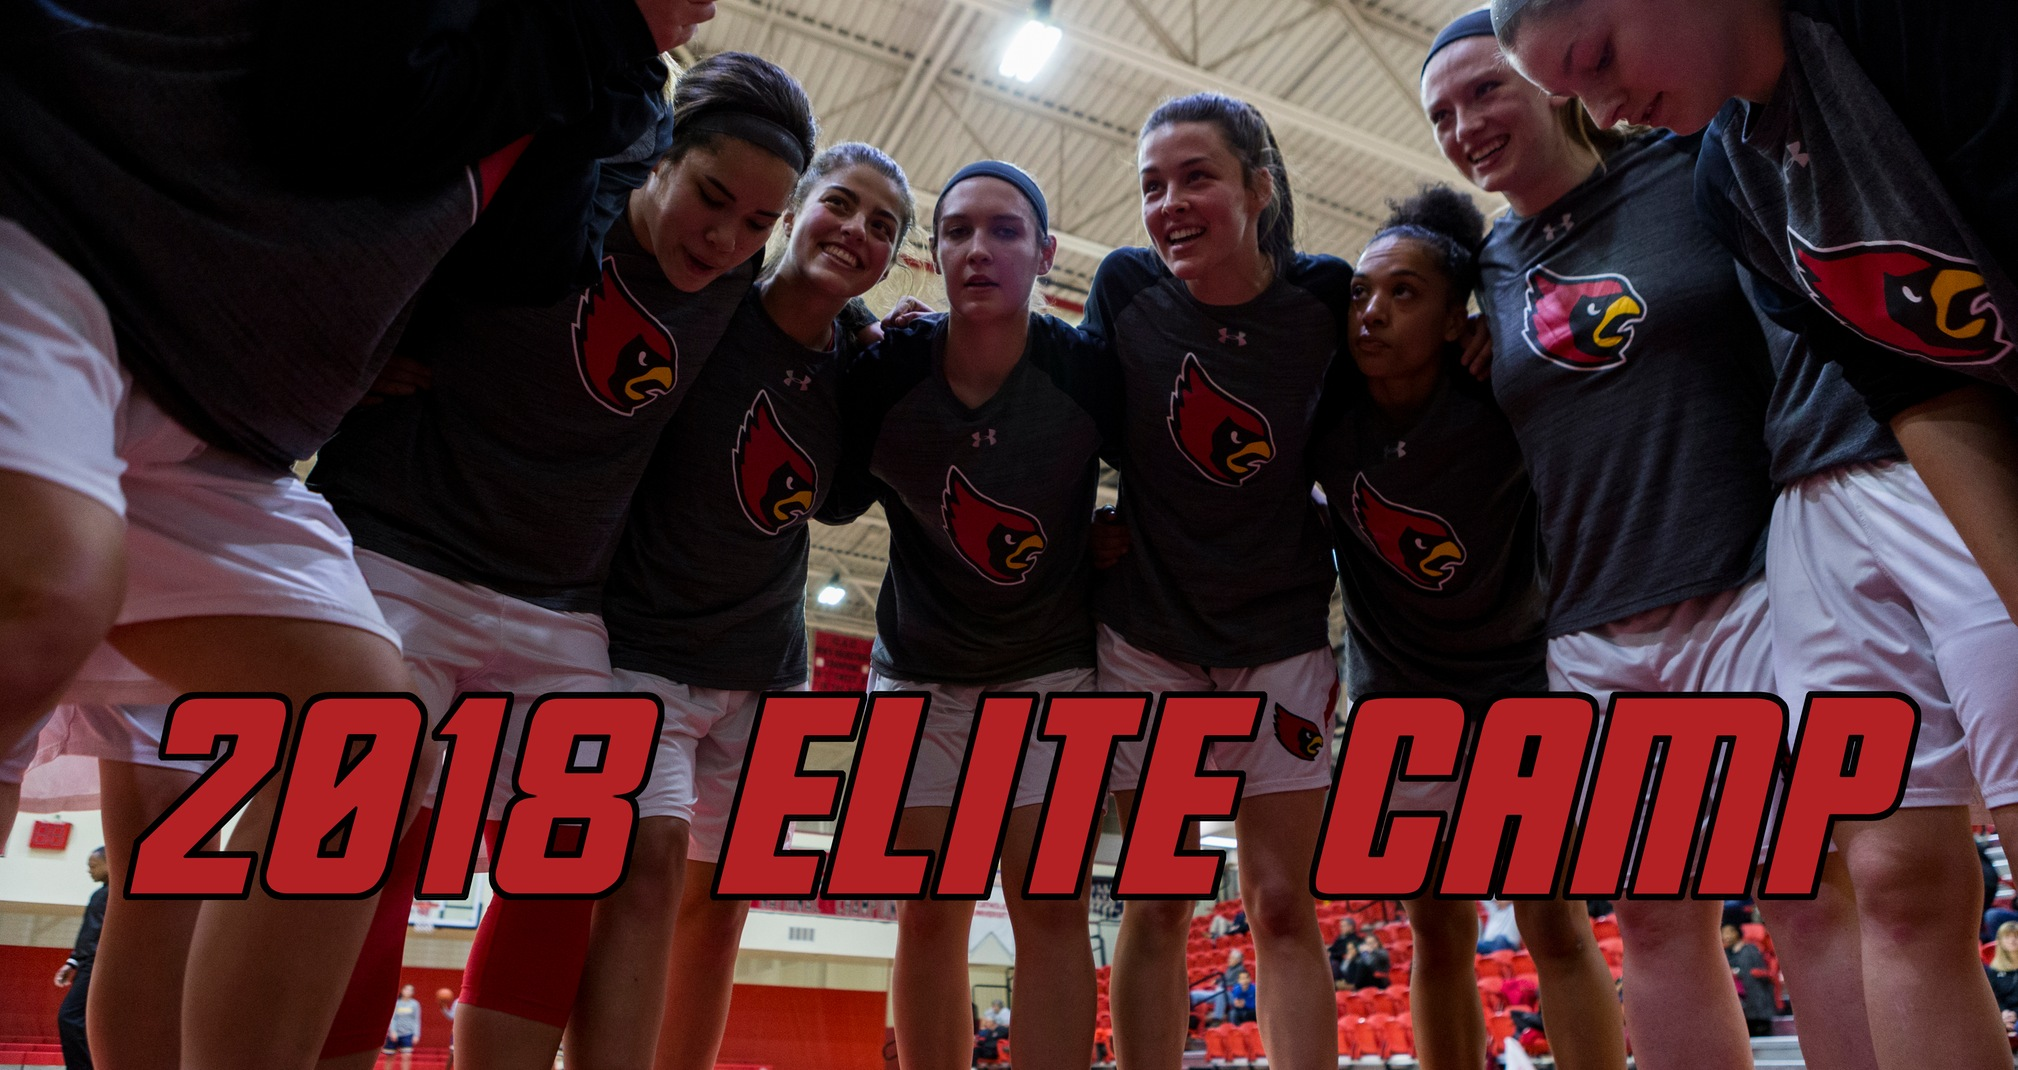 Donohue Announces 2018 Elite Camp for October 14